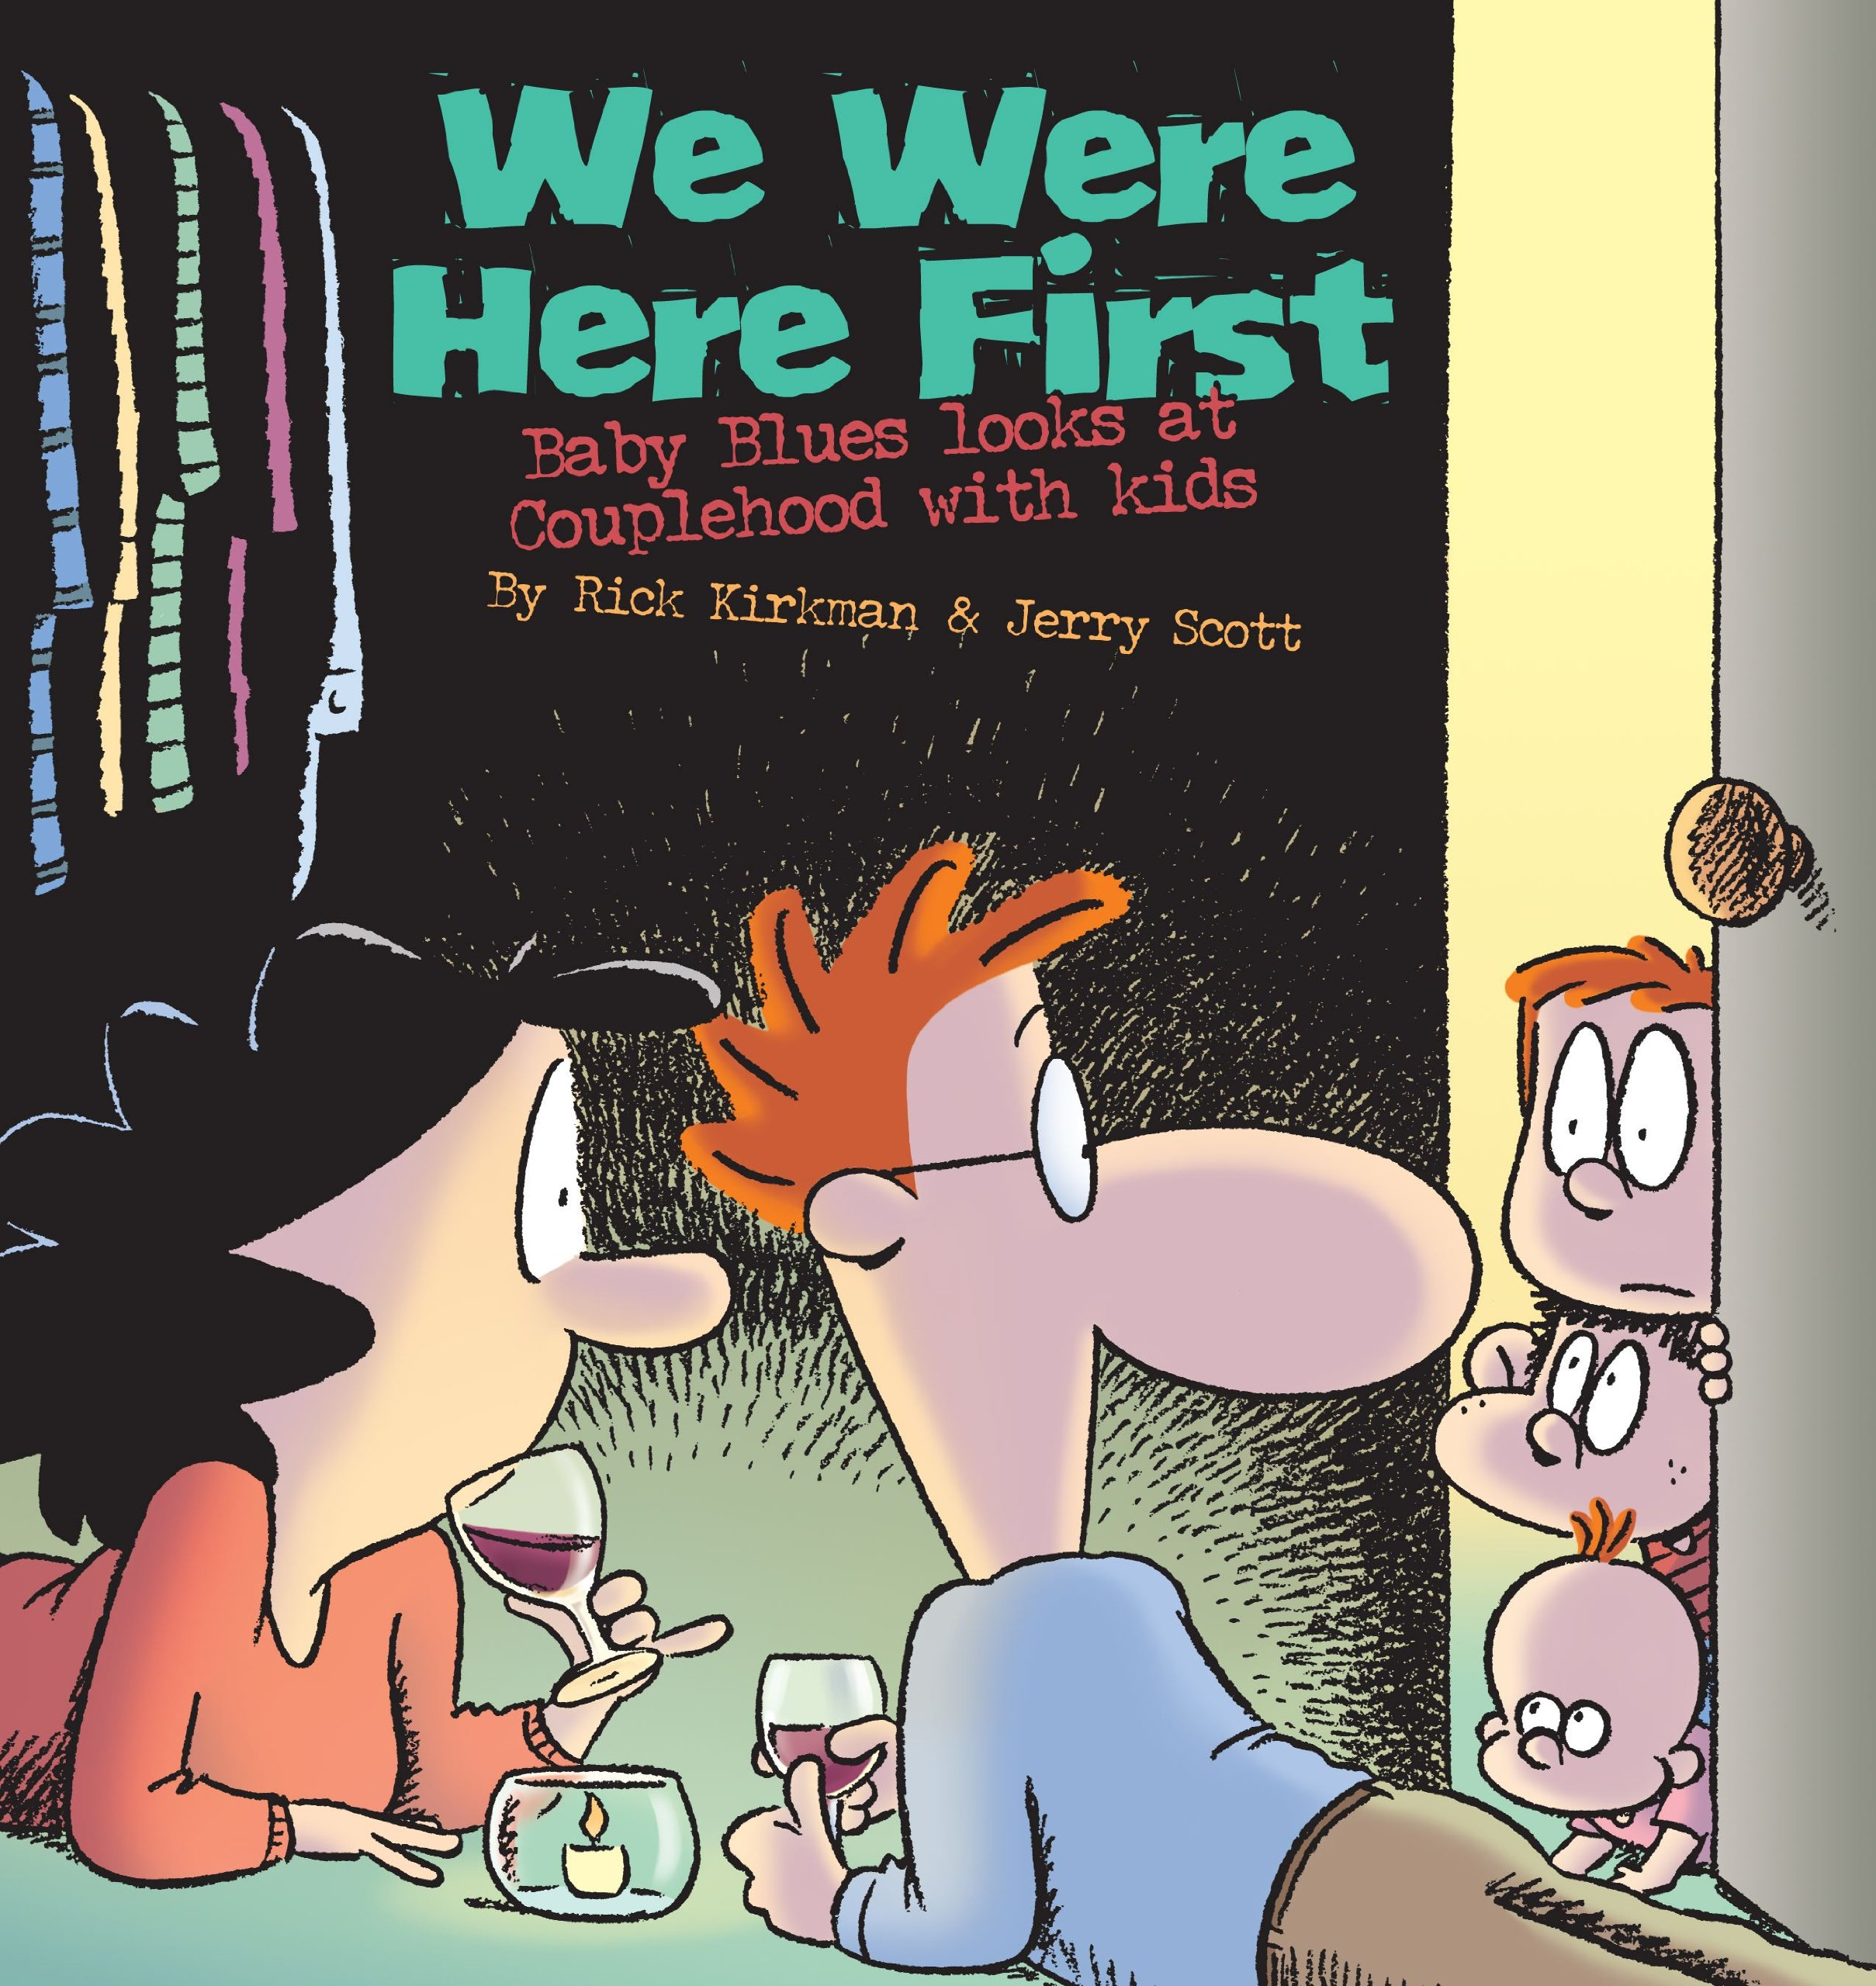 We Were Here First: Baby Blues Looks at Couplehood with Kids PDF